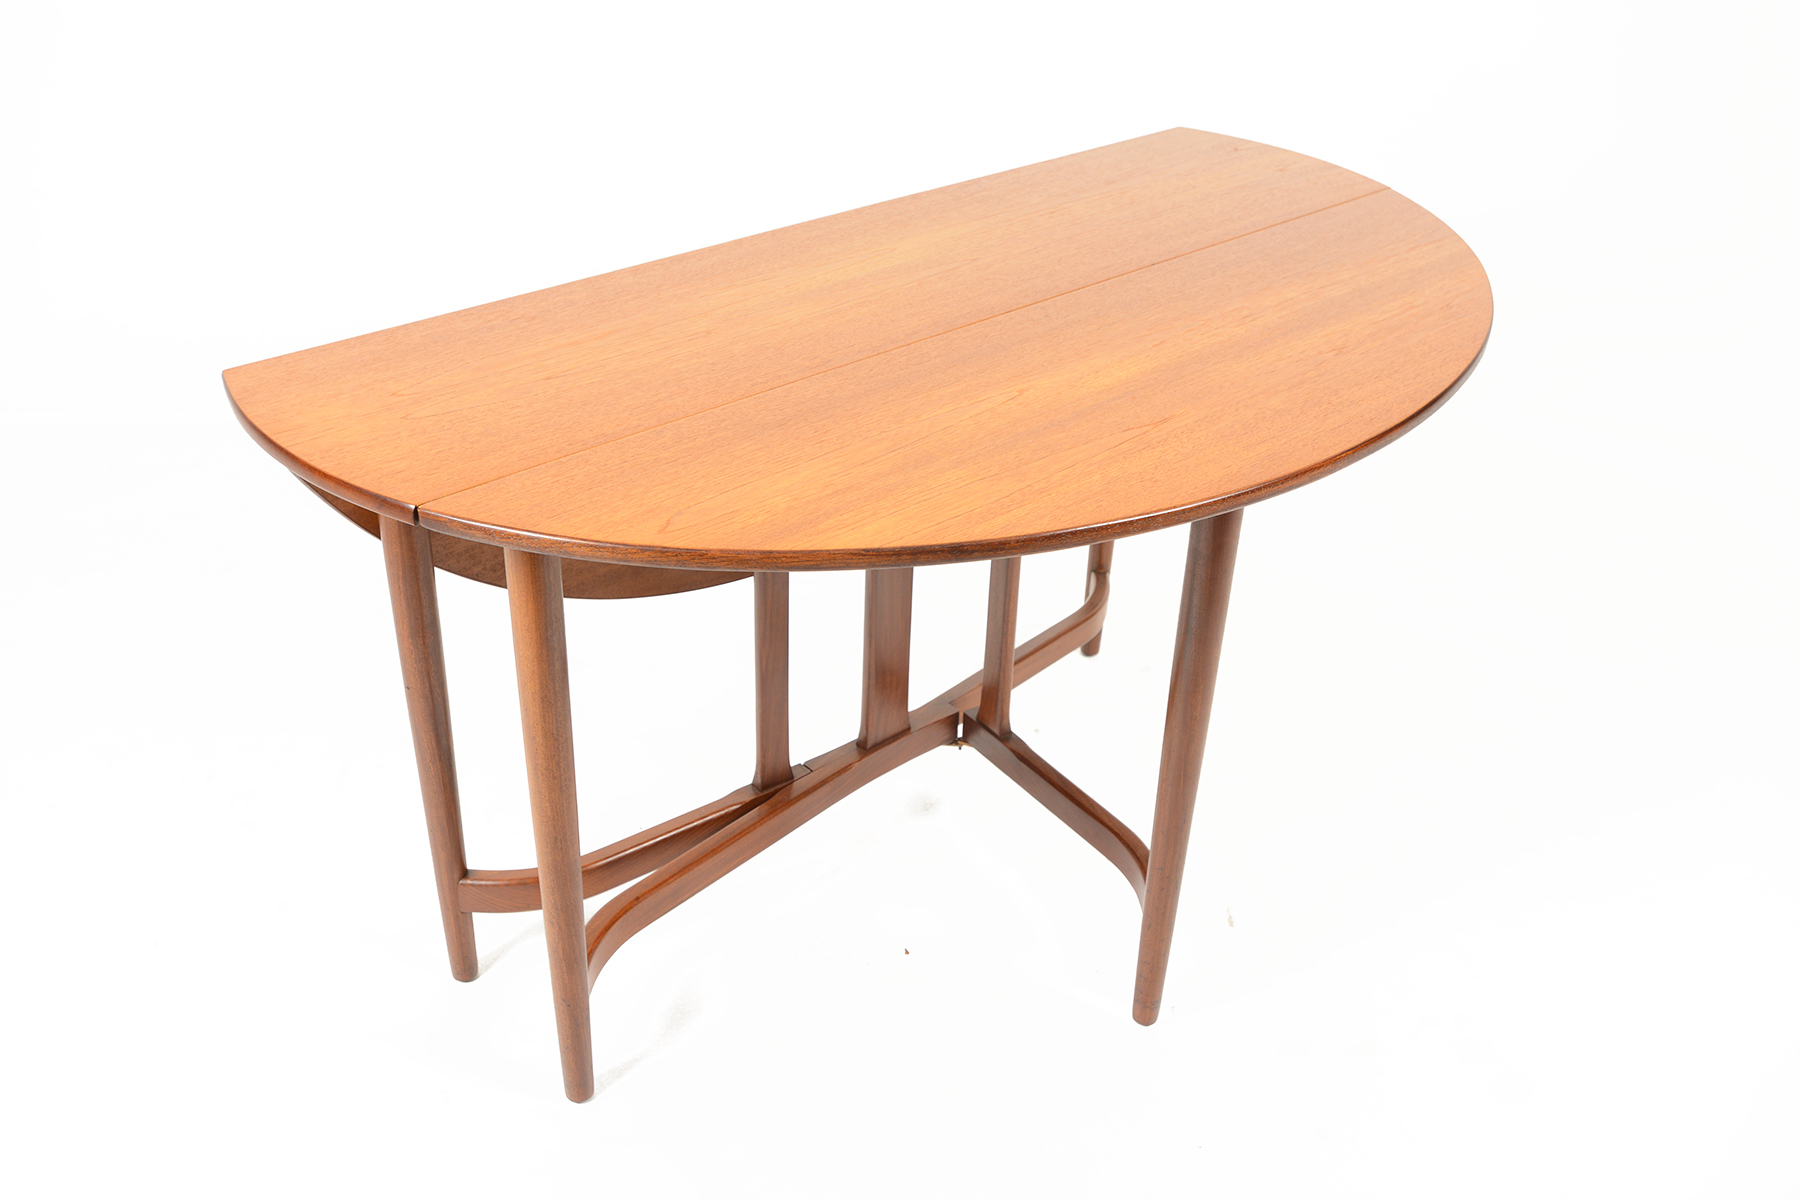 Teak Drop Leaf Dining Table Stocktonandco : DSC6937 from stocktonandco.com size 1800 x 1200 jpeg 518kB